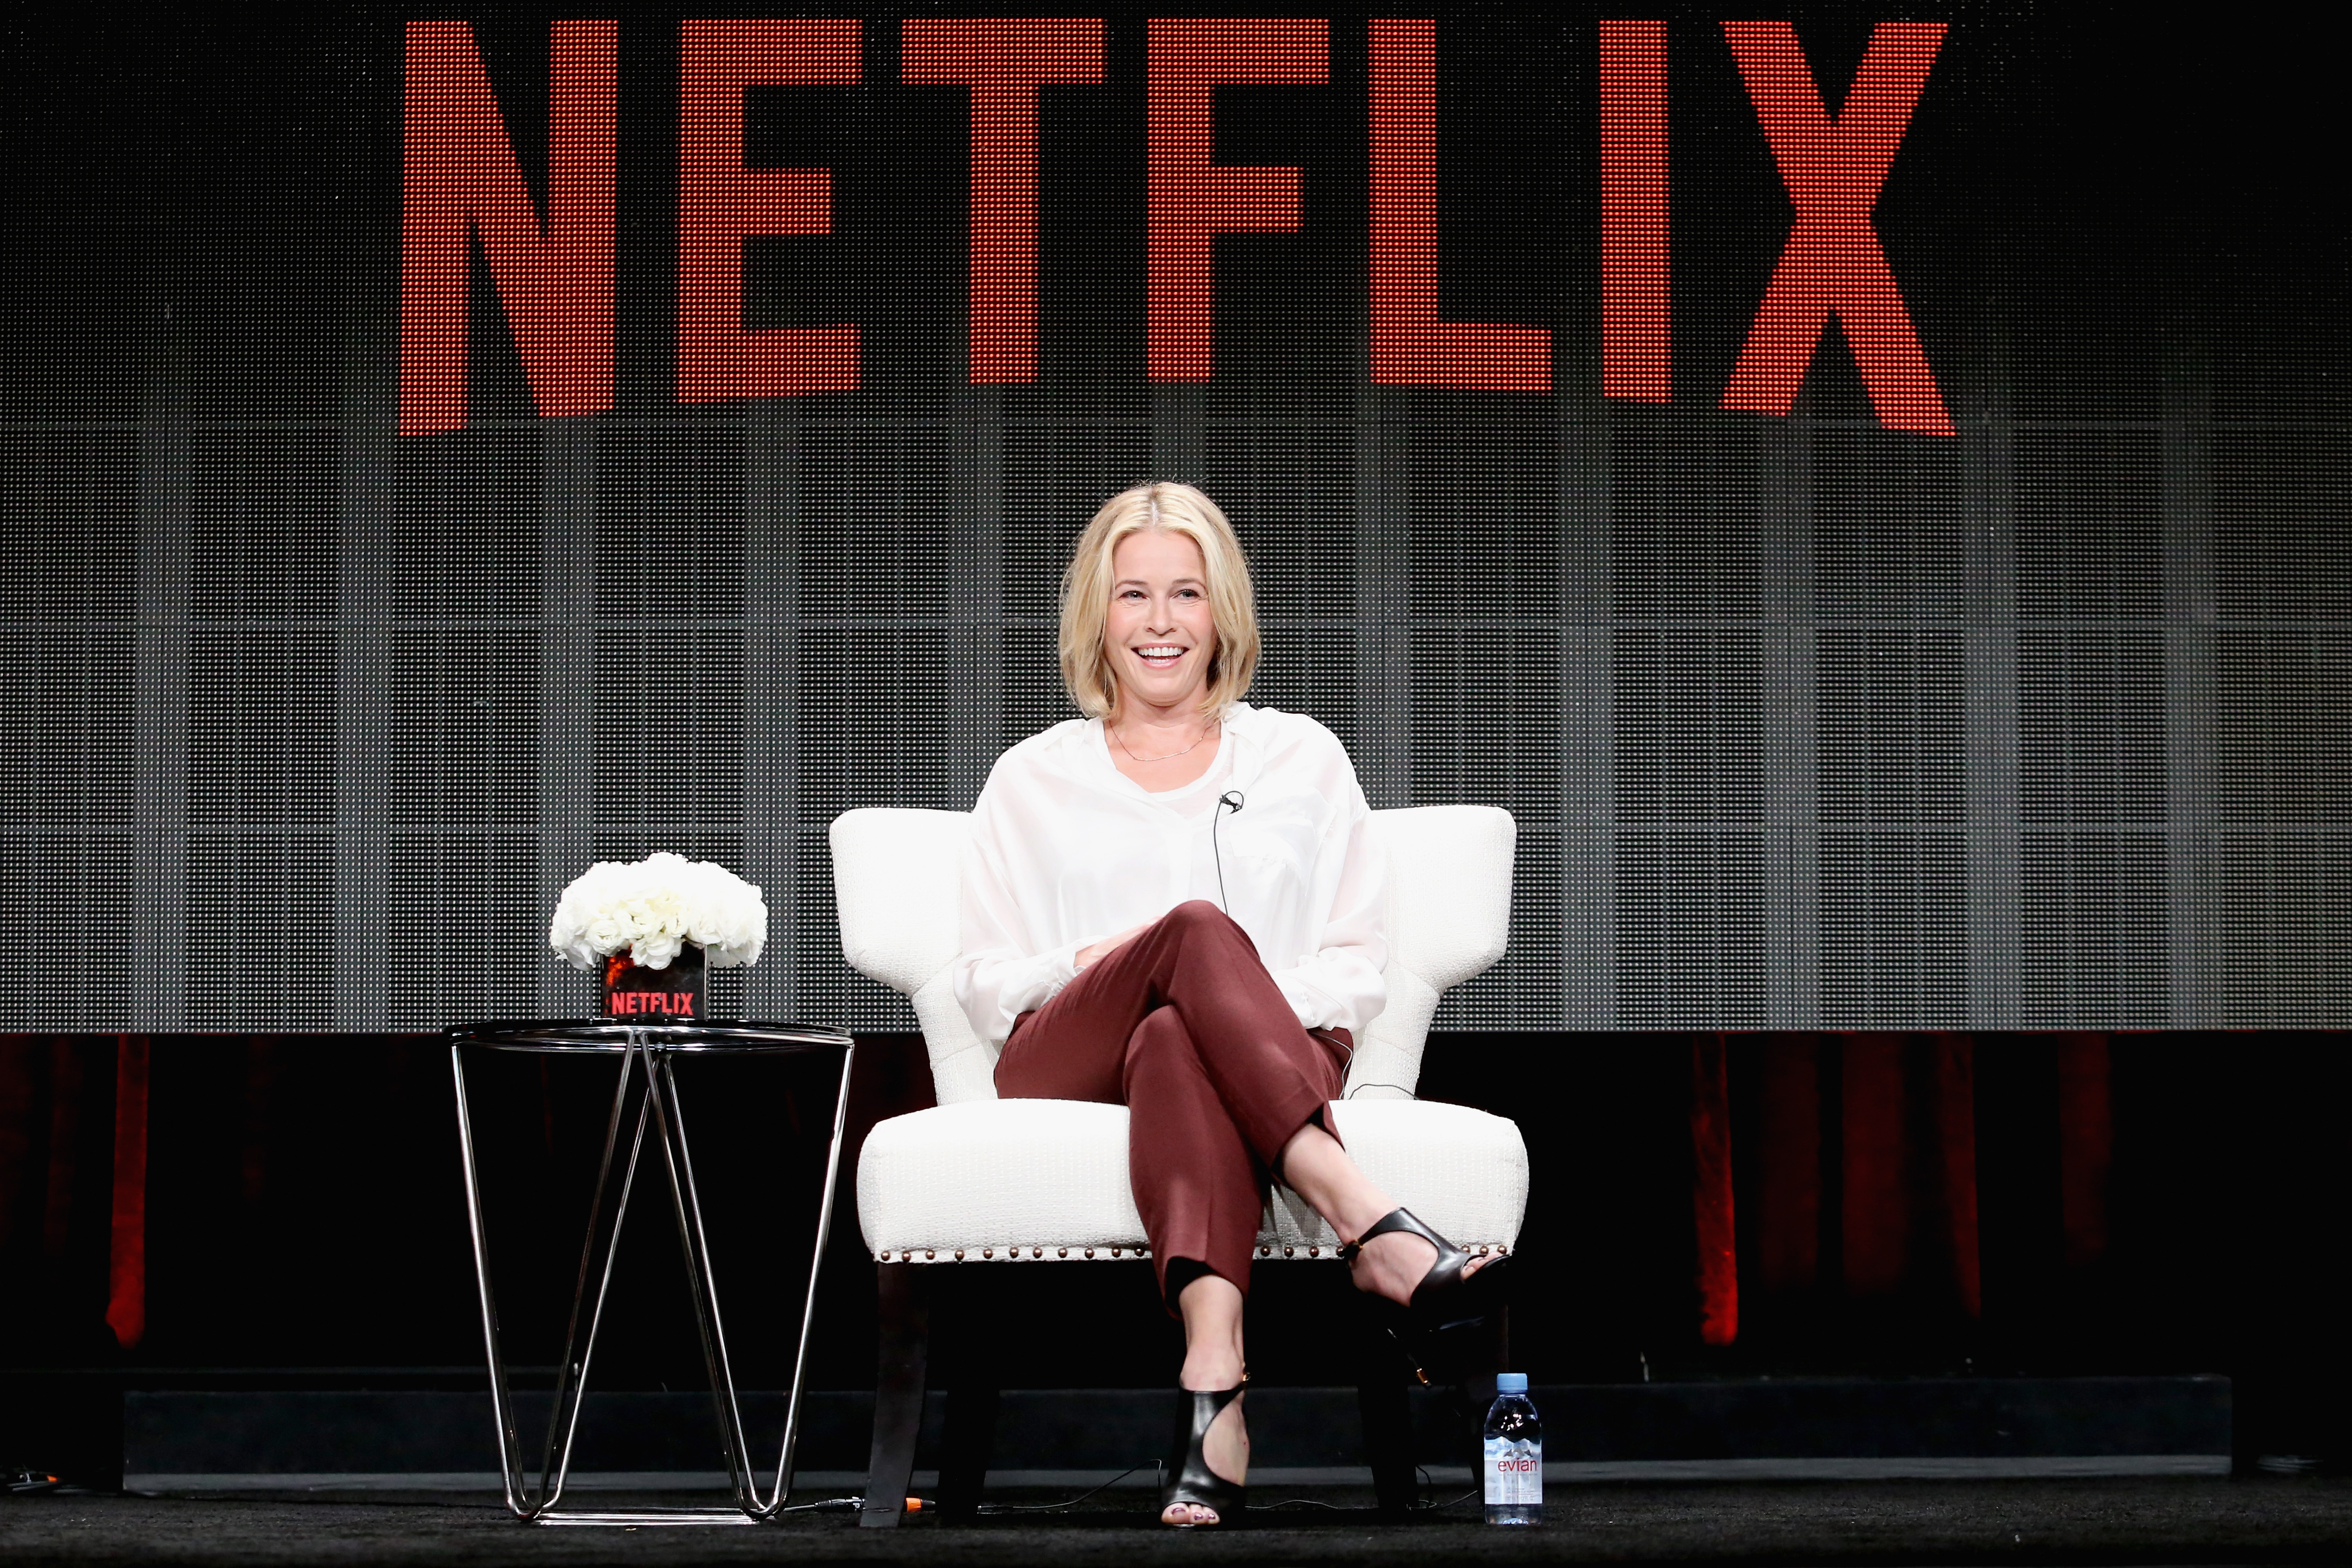 """Comedian Chelsea Handler speaks onstage during the """"Chelsea Does"""" panel discussion at the Netflix portion of the 2015  Summer TCA Tour at The Beverly Hilton Hotel on July 28, 2015 in Beverly Hills, California."""